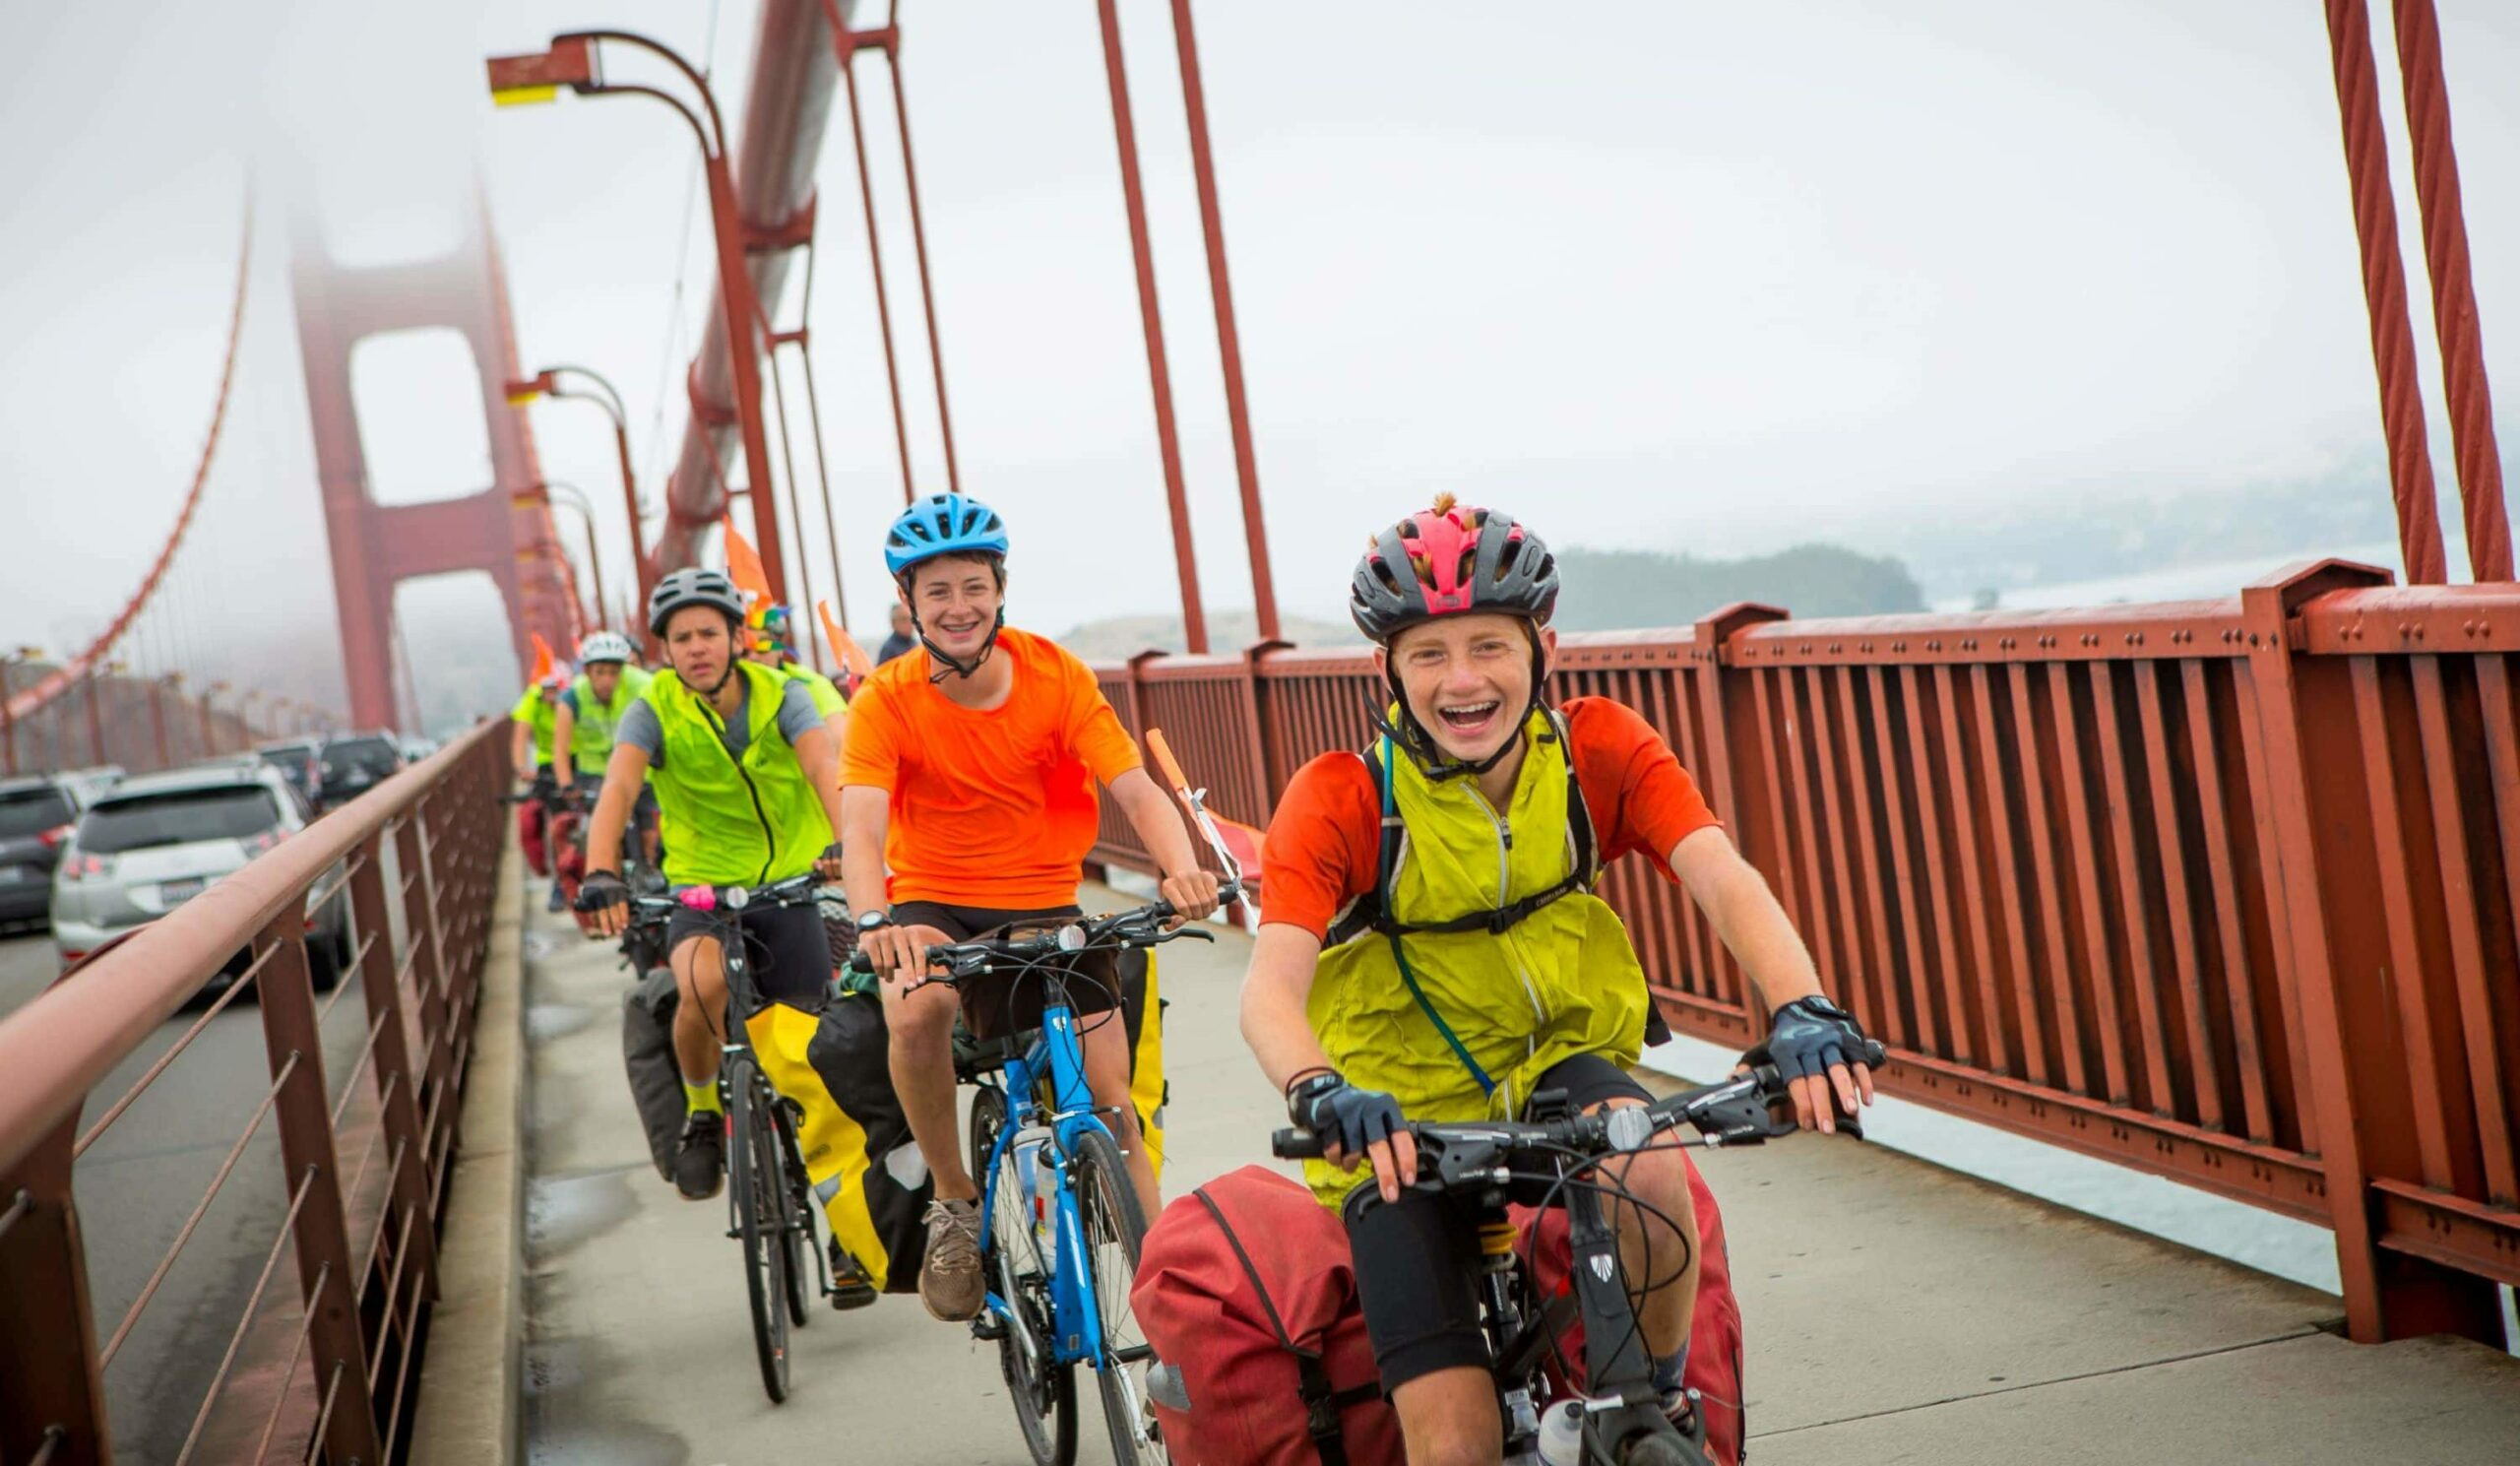 Cycling across the golden gate bridge on a teen summer biking trip